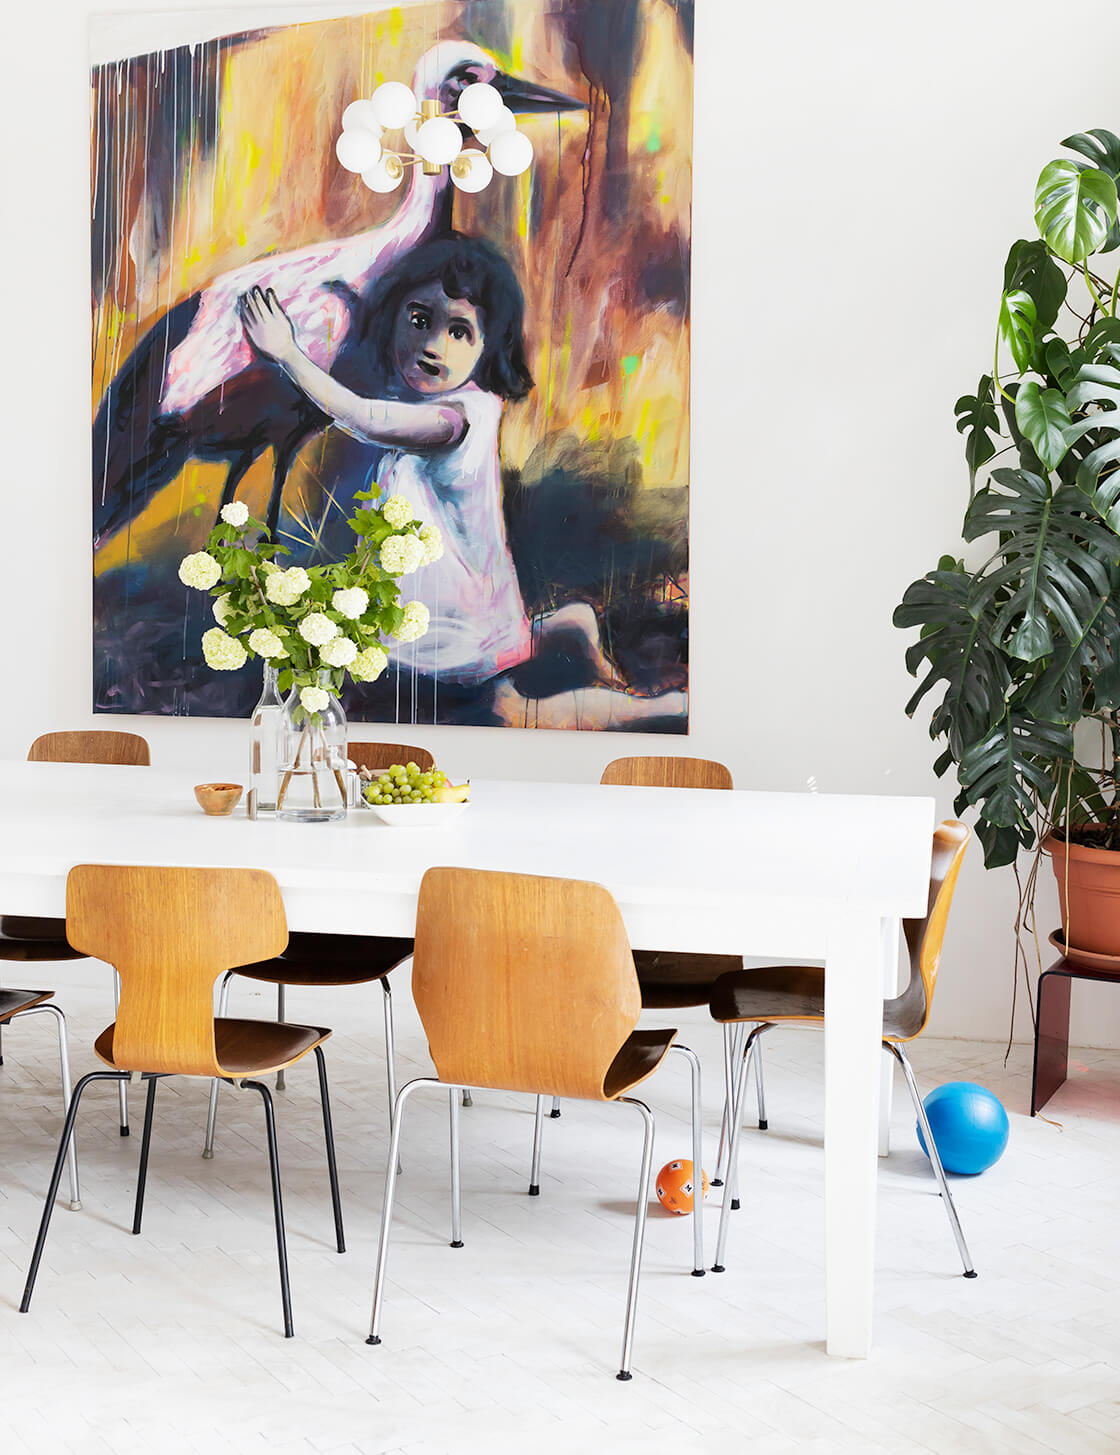 indiangoodsco_blog_design_inspiration_hometour_vienna_claudiarockstroh_carlosperez_historic apartment_whitefloors_art_diningroom_3